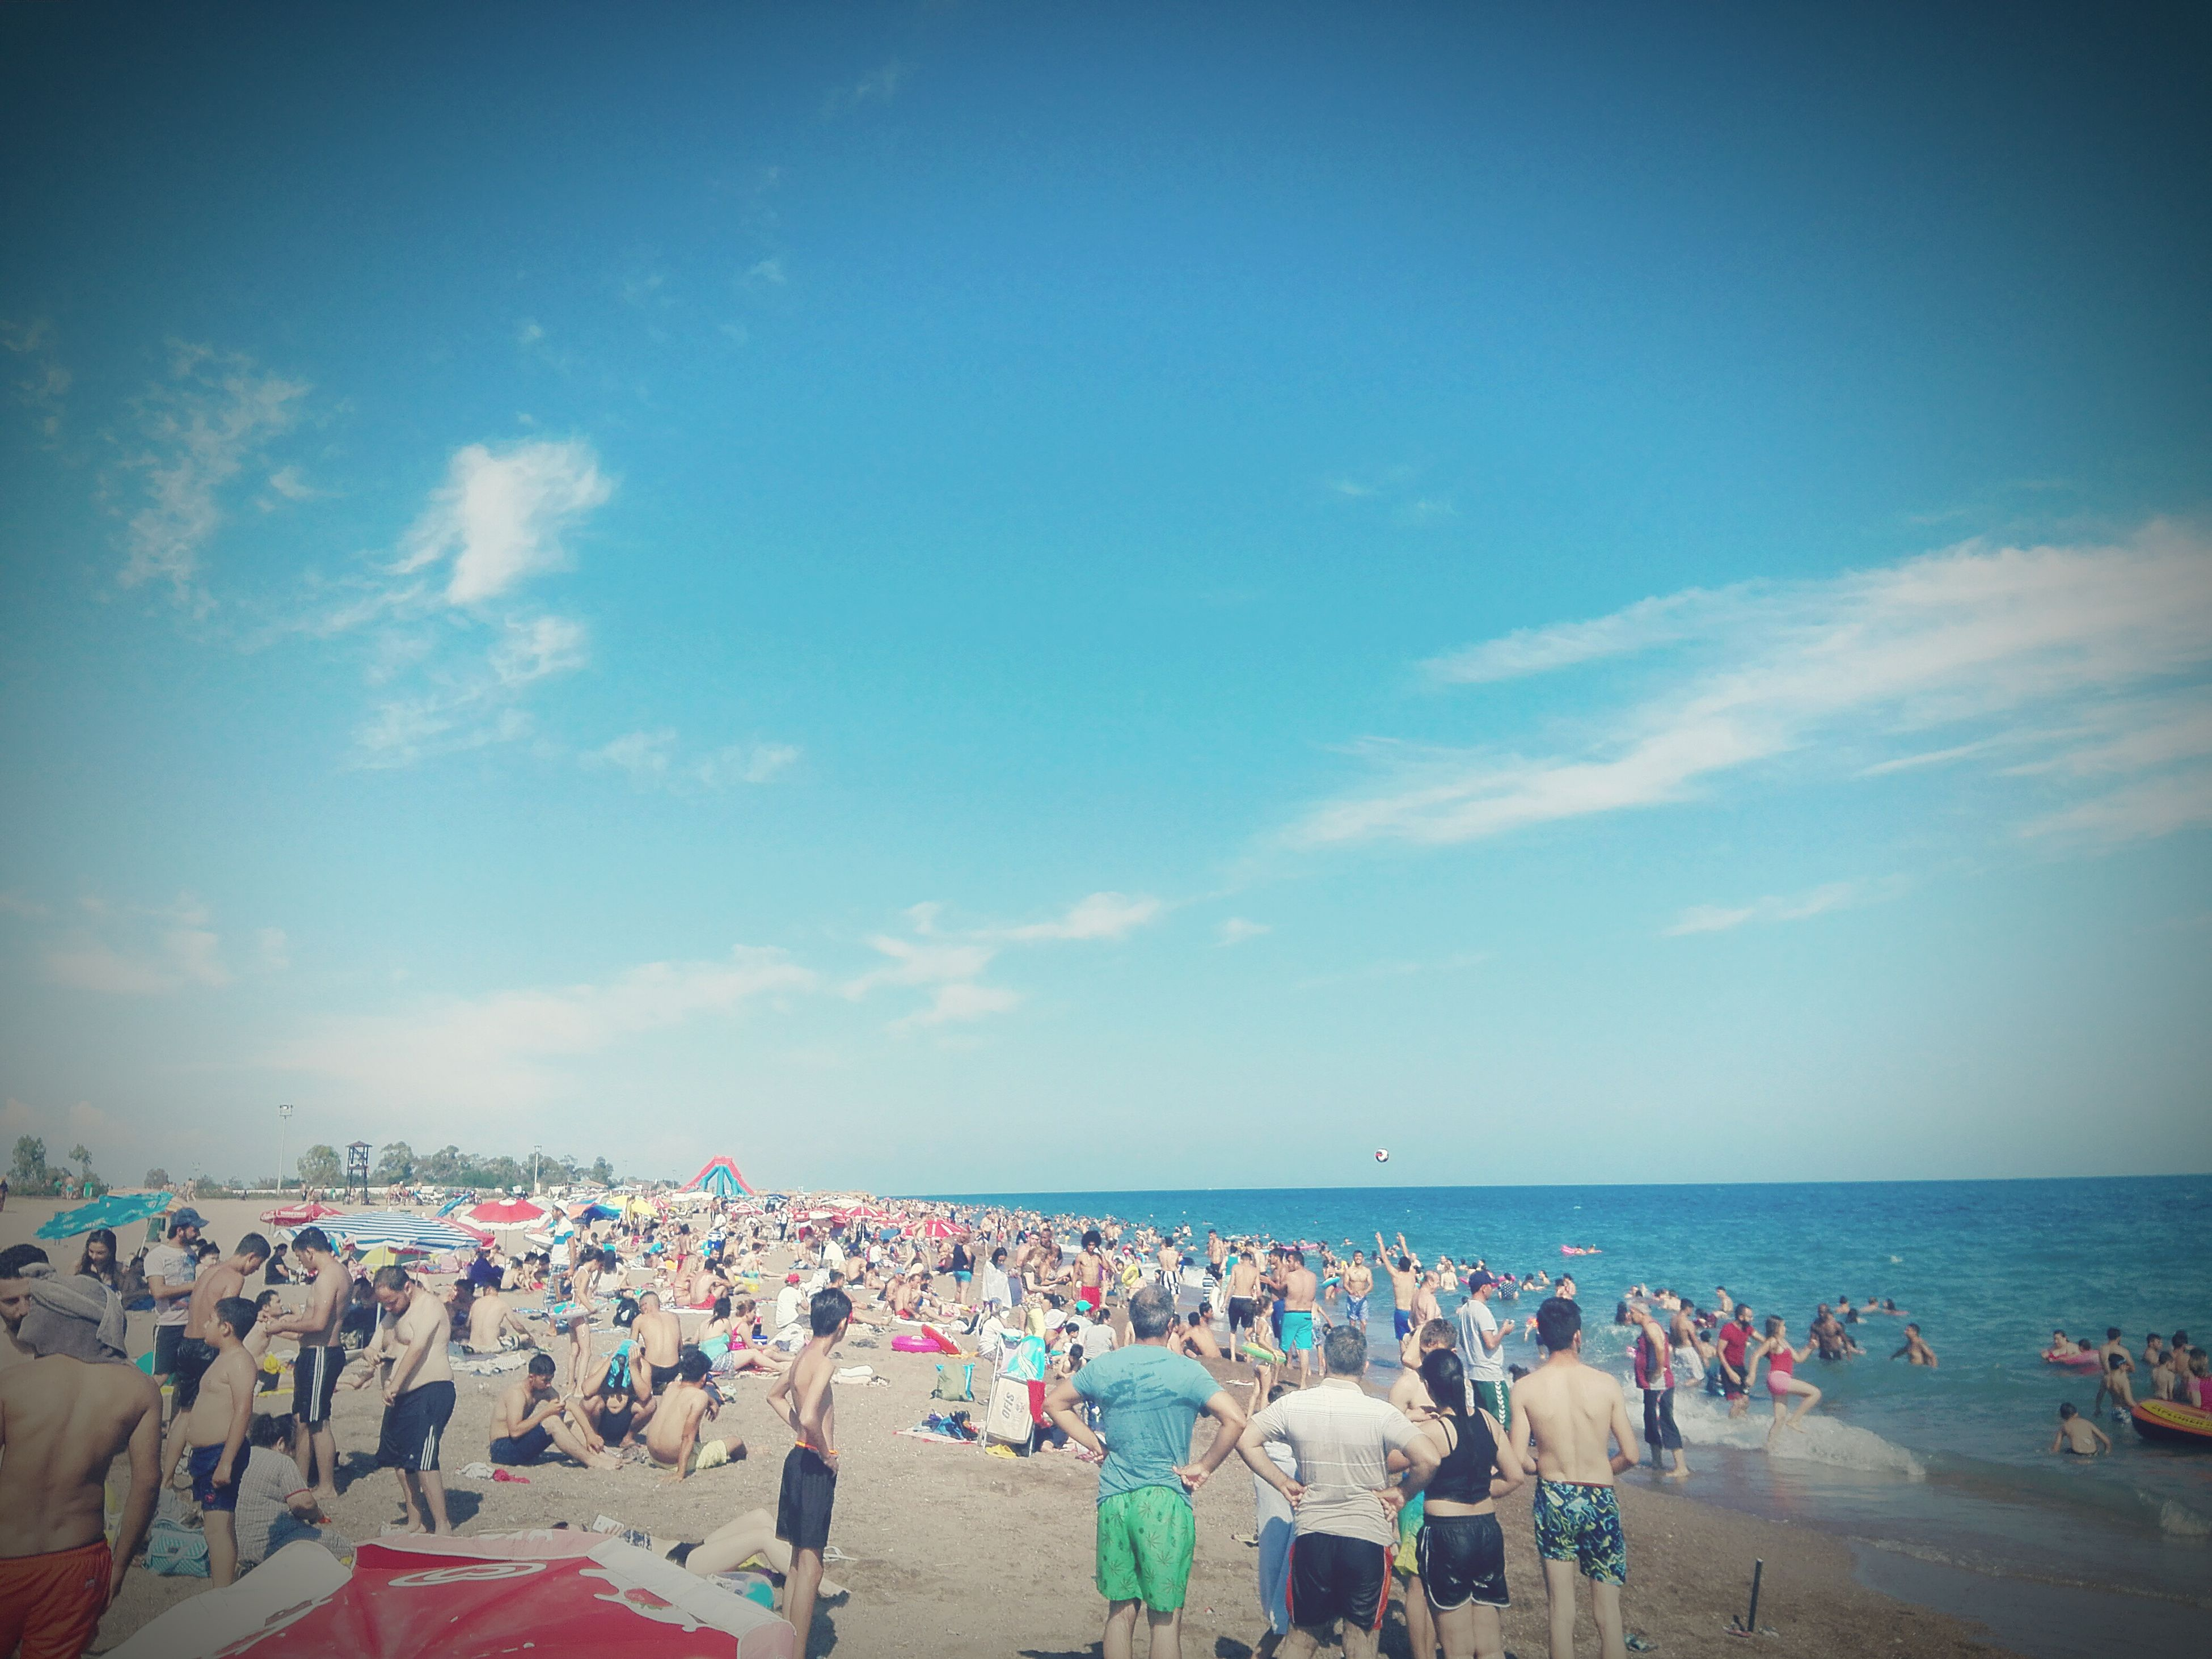 large group of people, beach, sky, sea, horizon over water, real people, sand, water, men, leisure activity, enjoyment, cloud - sky, lifestyles, women, vacations, nature, crowd, day, weekend activities, scenics, summer, outdoors, relaxation, beauty in nature, togetherness, people, adult